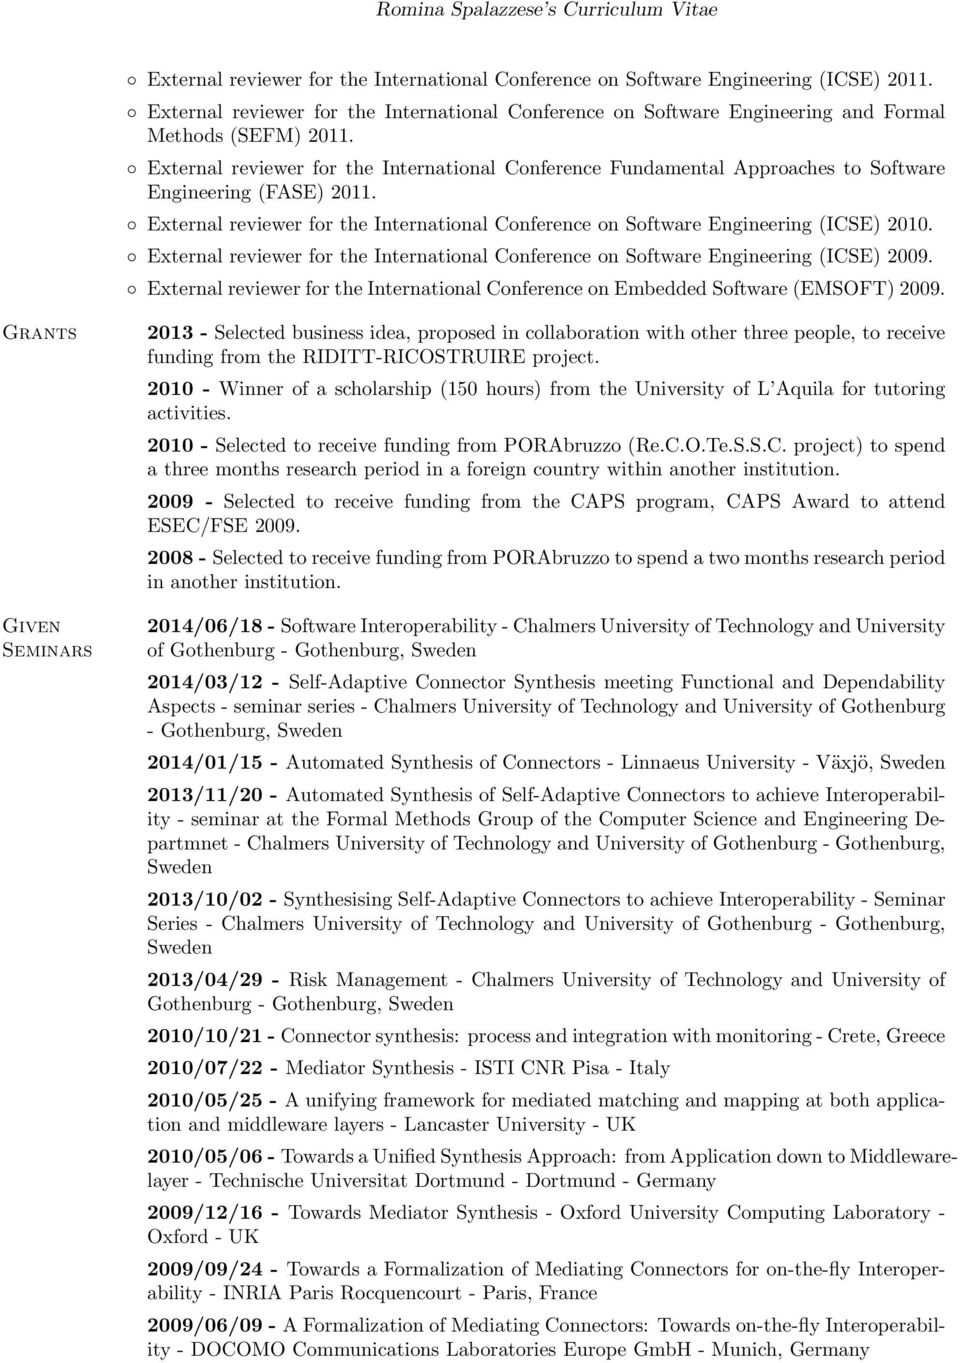 External reviewer for the International Conference on Software Engineering (ICSE) 2009. External reviewer for the International Conference on Embedded Software (EMSOFT) 2009.